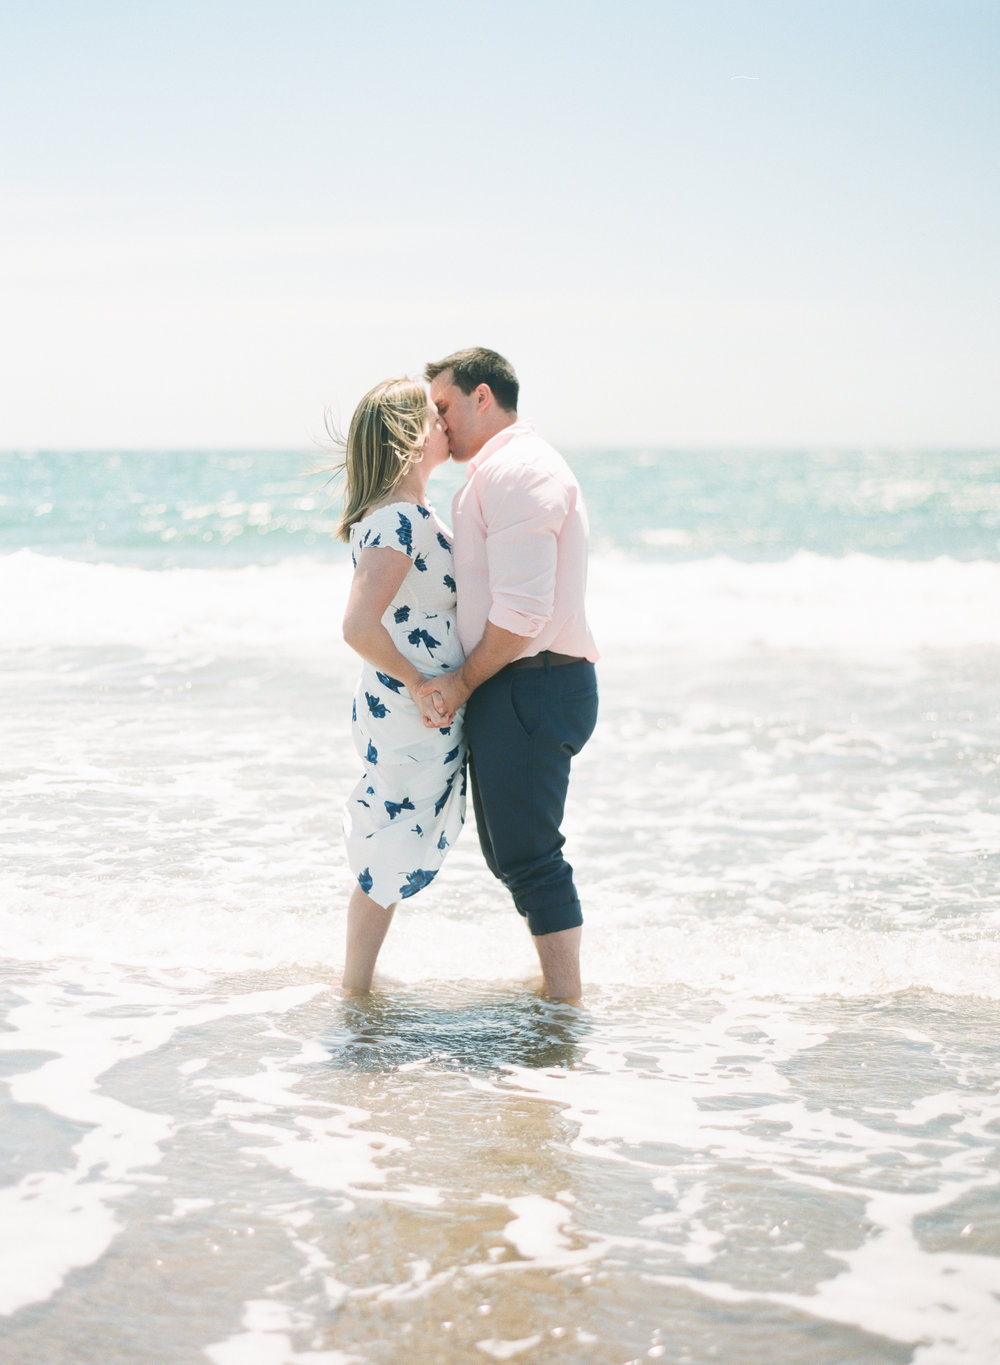 Jacqueline Anne Photography-Melissa and Daniel - Contax 645 - Beach Full Sun-8.jpg